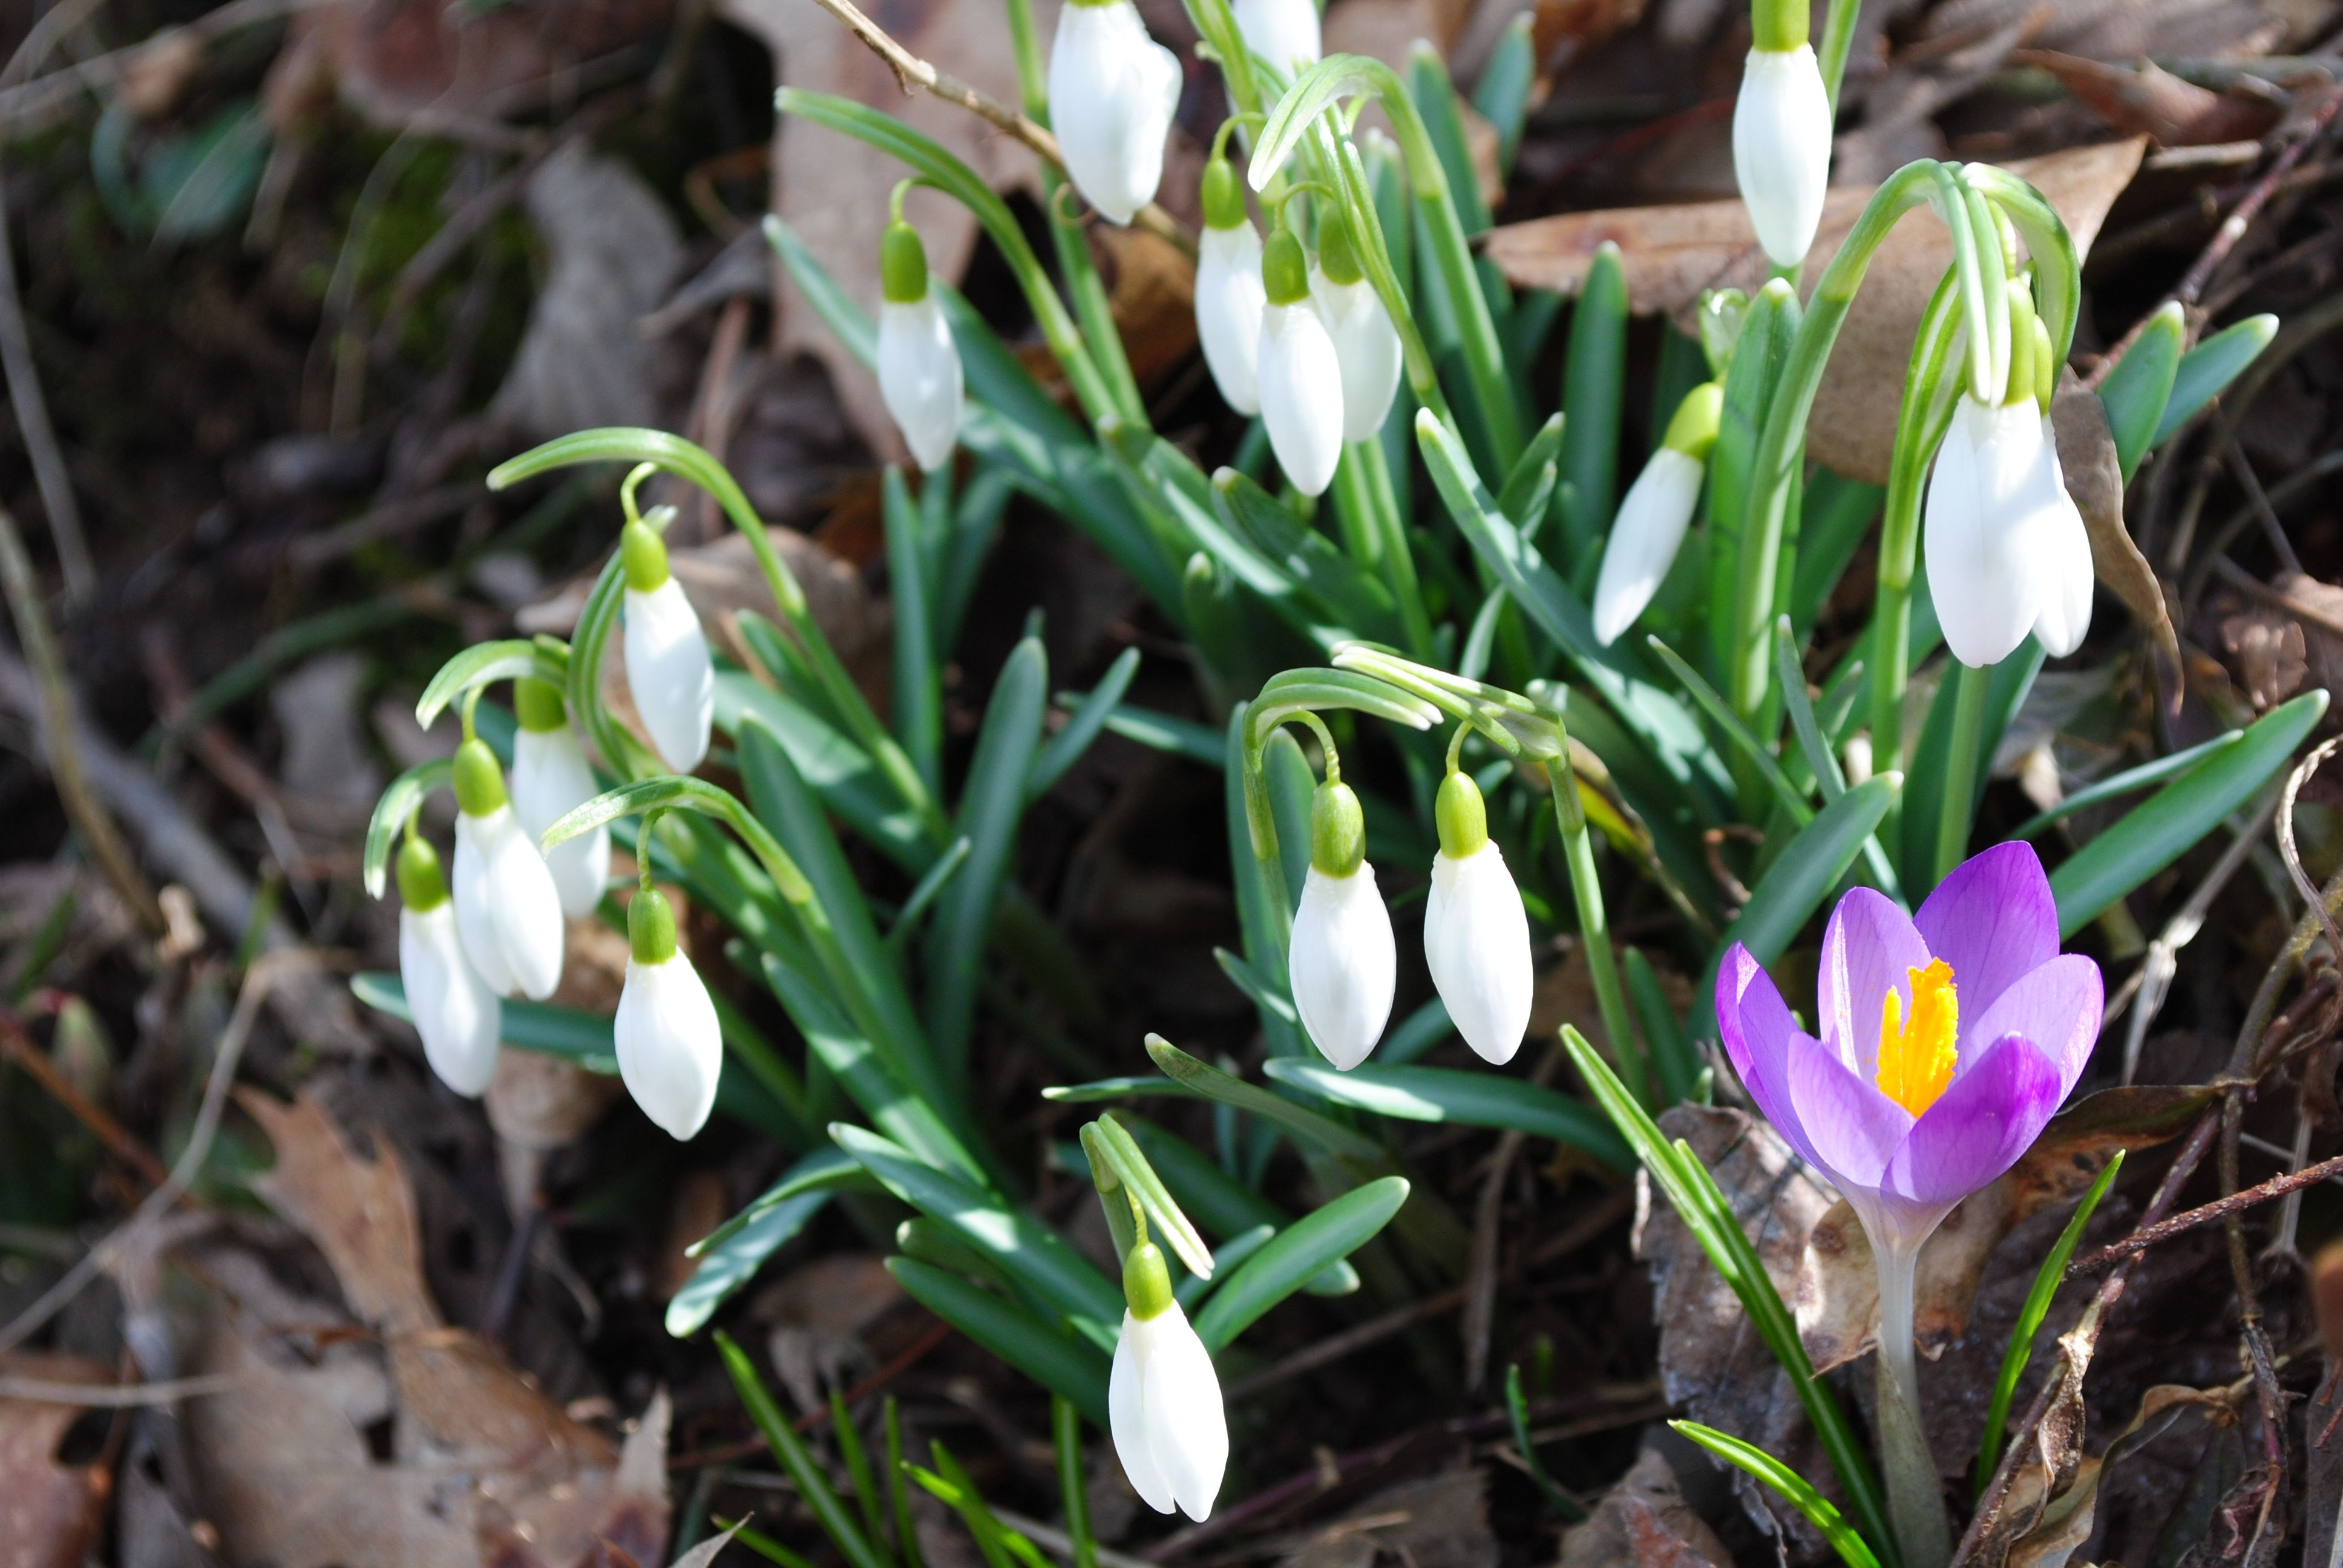 Snowdrops and Tommy Crocus